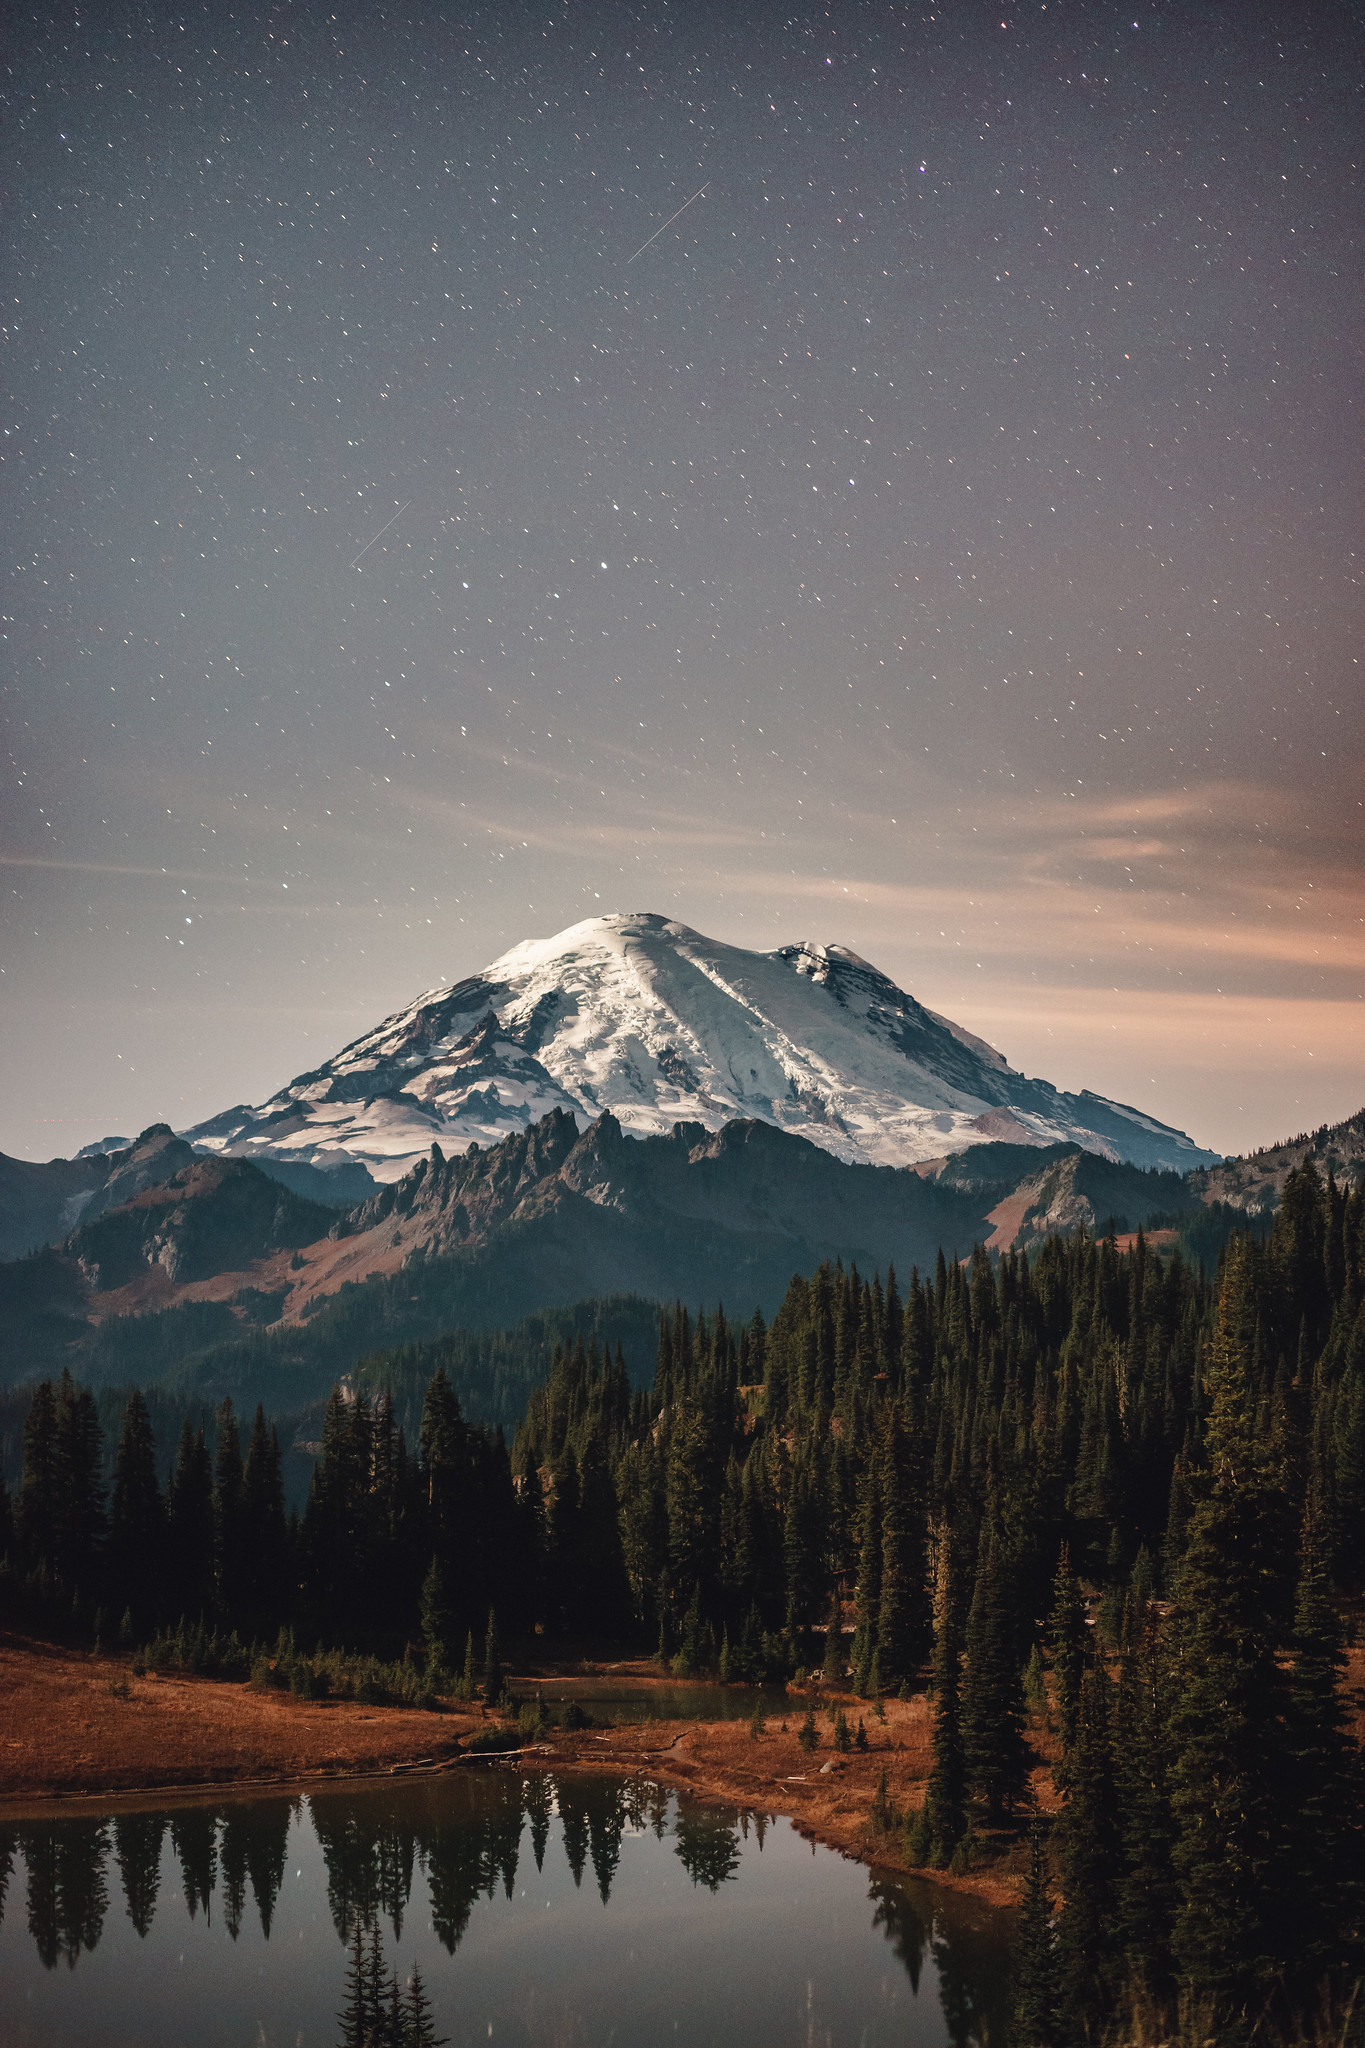 Mount Rainier under a starry sky [1365×2048] Photographed by Bryan Buchanan